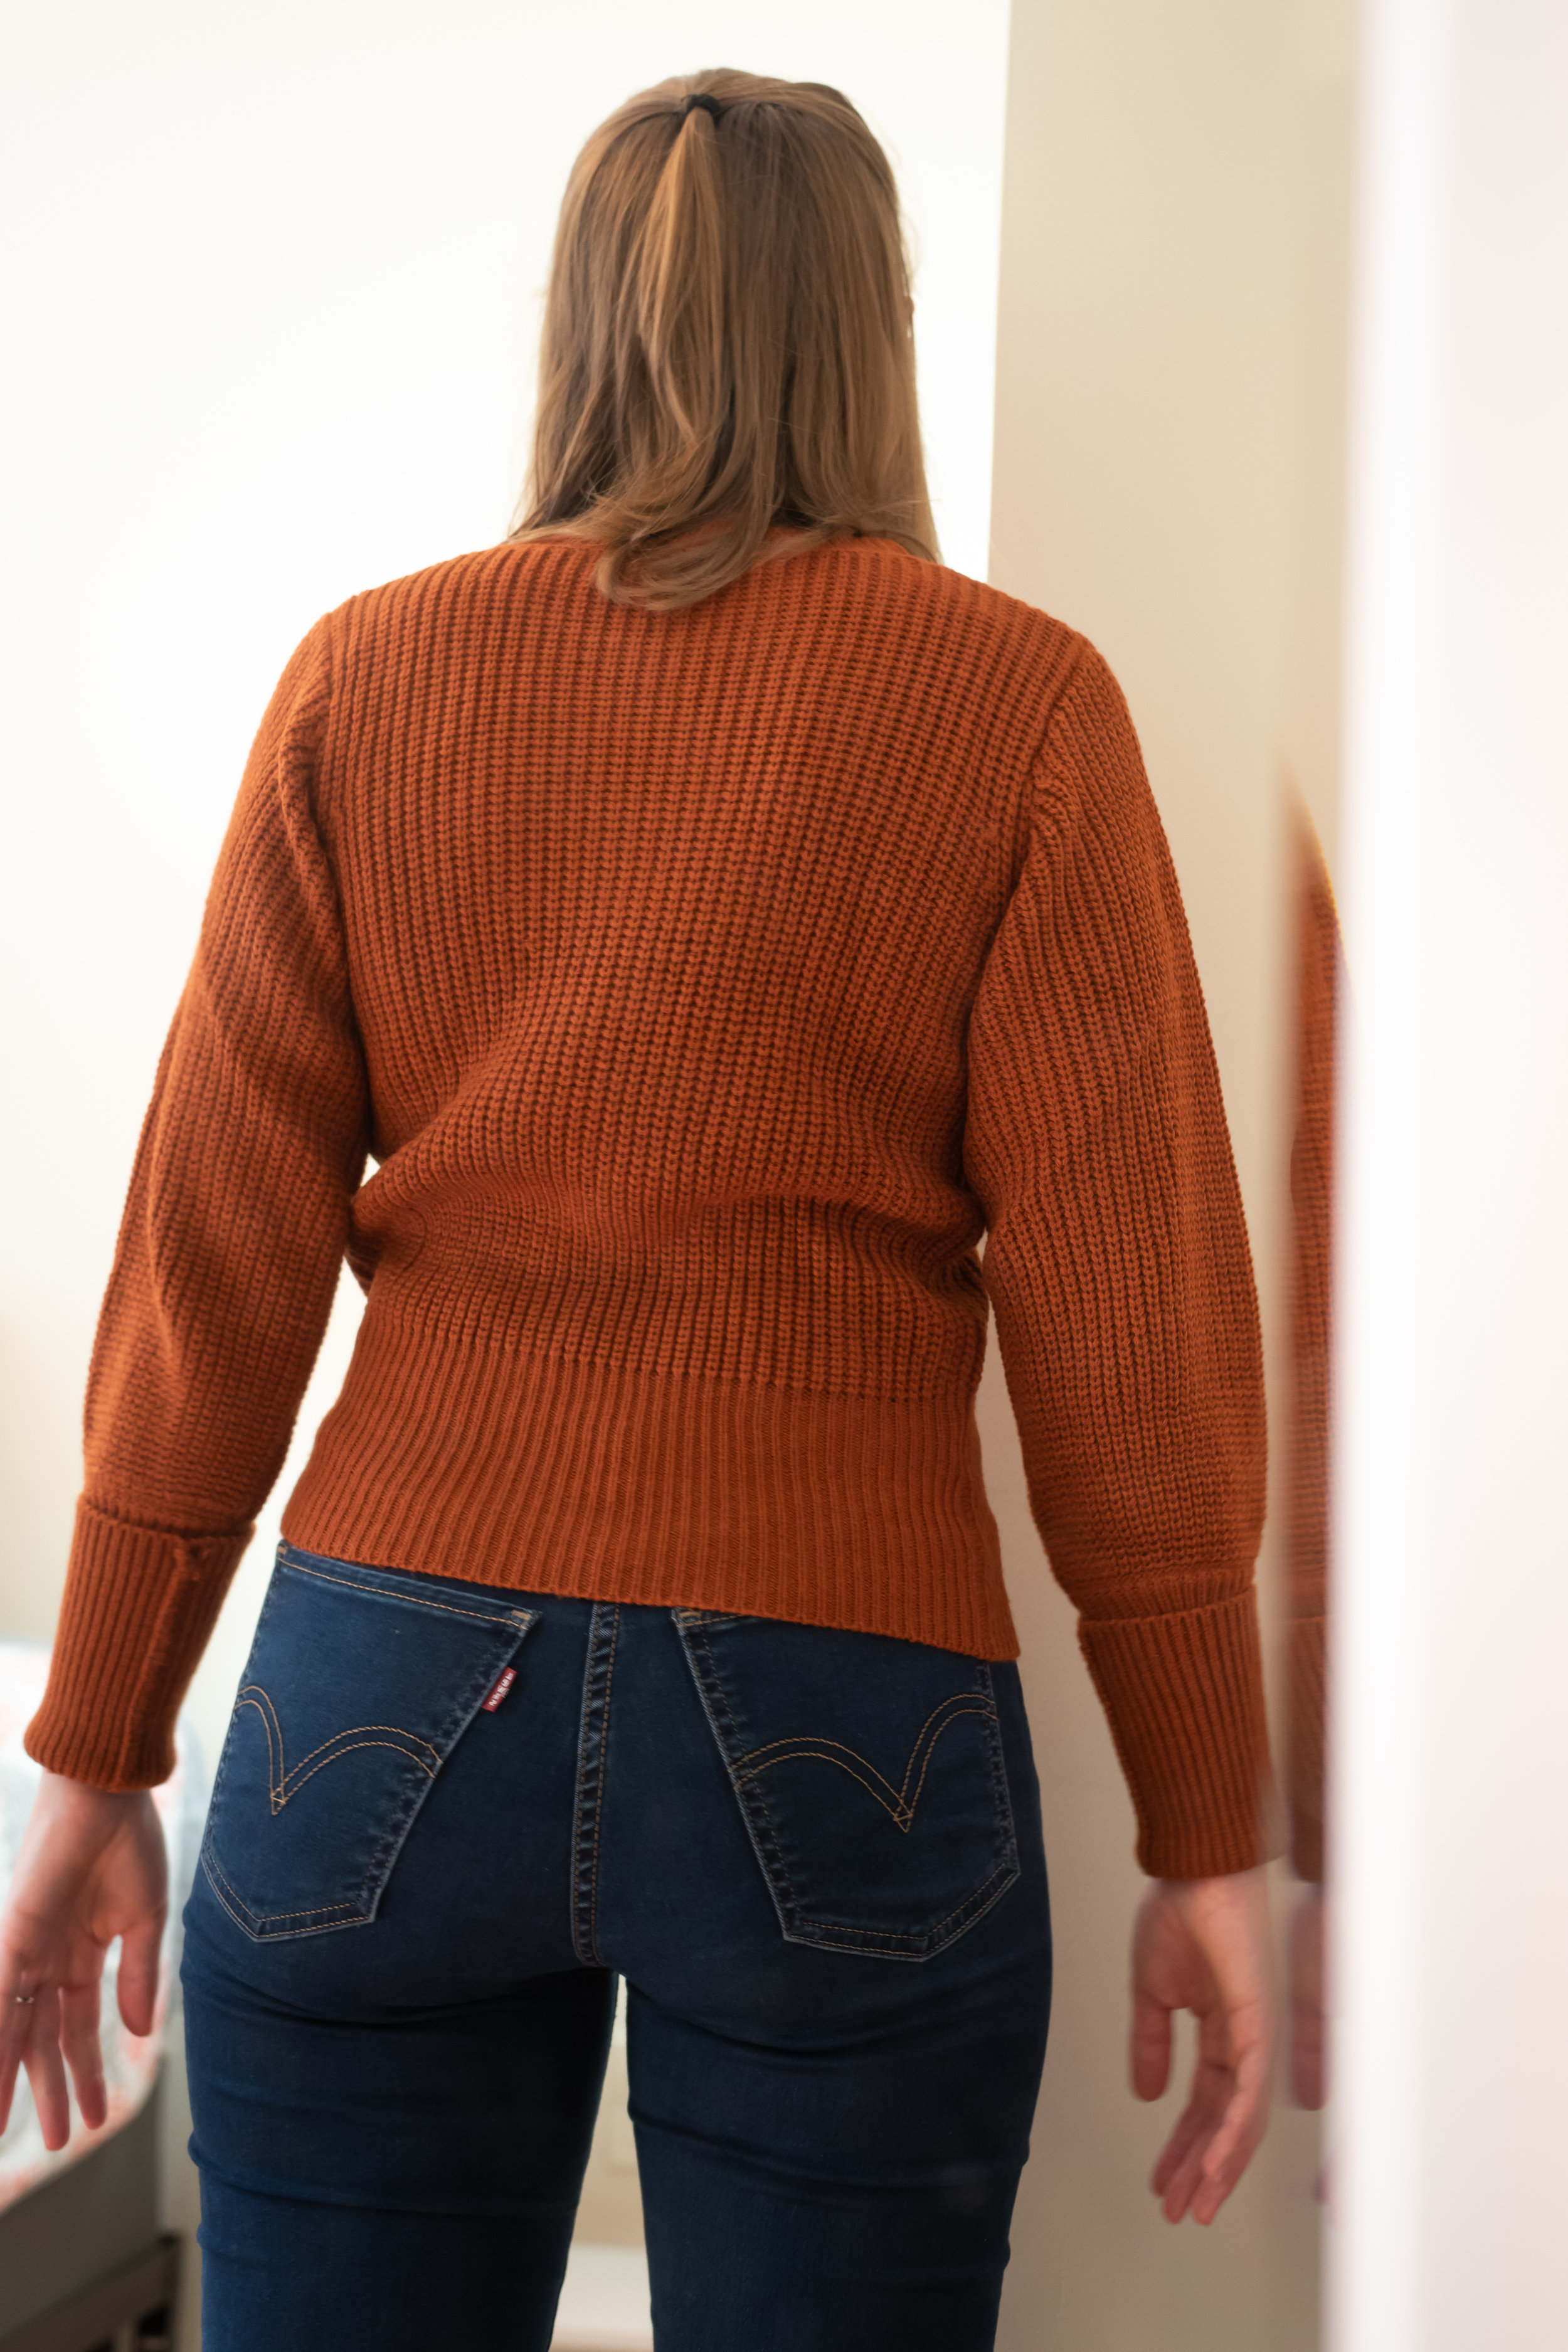 Fashion Union Petite Sweater With Fitted Rib - Size 6 Petite - BACK